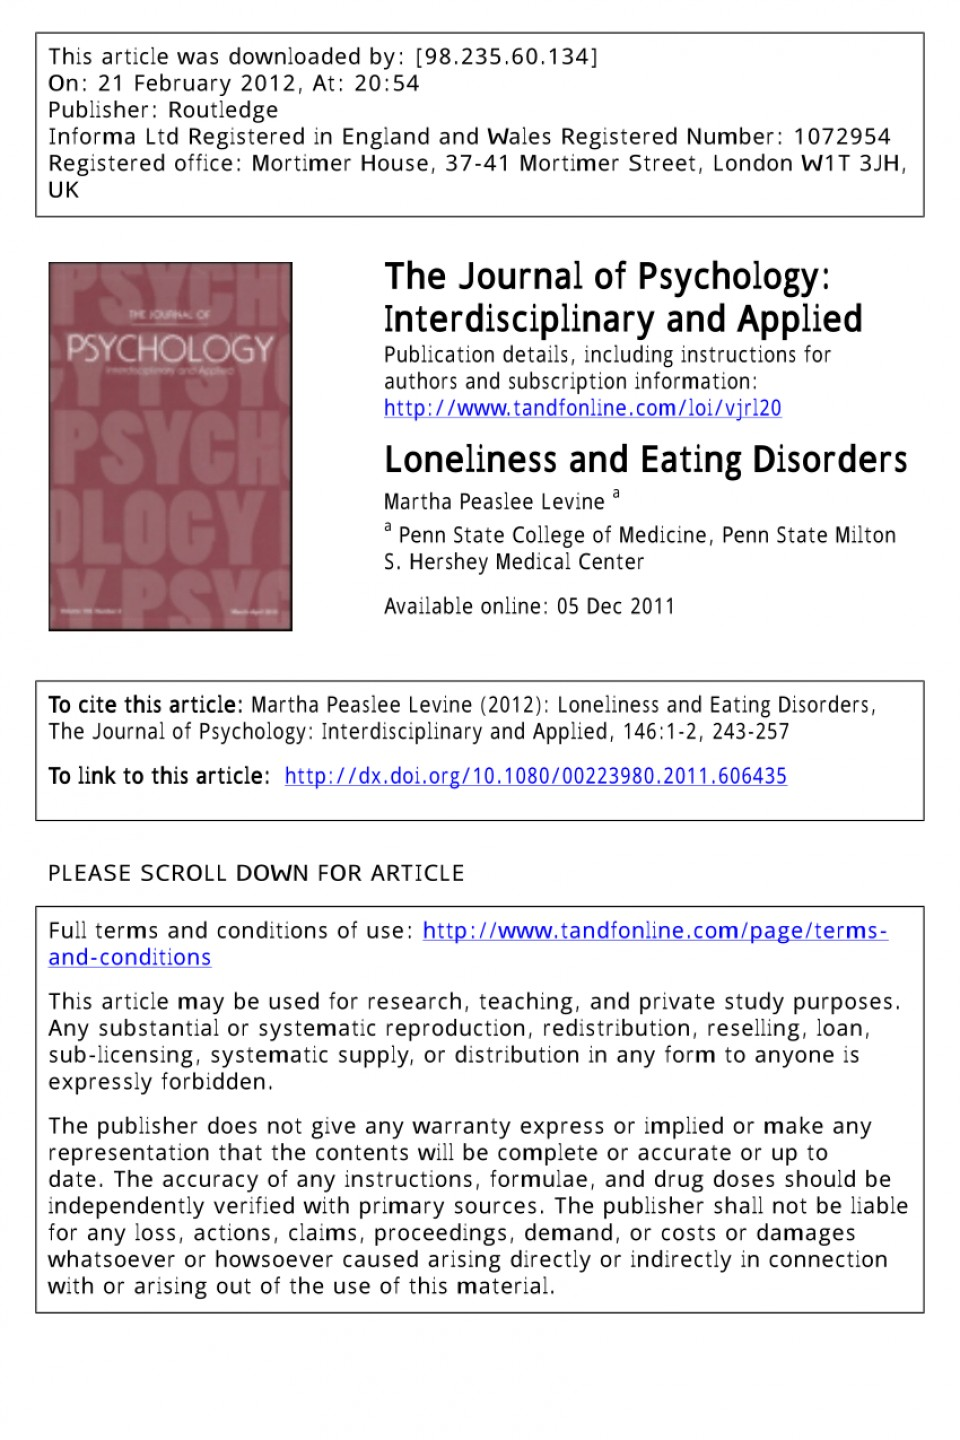 004 Research Paper Largepreview Psychological On Eating Imposing Disorders Psychology Topics 960